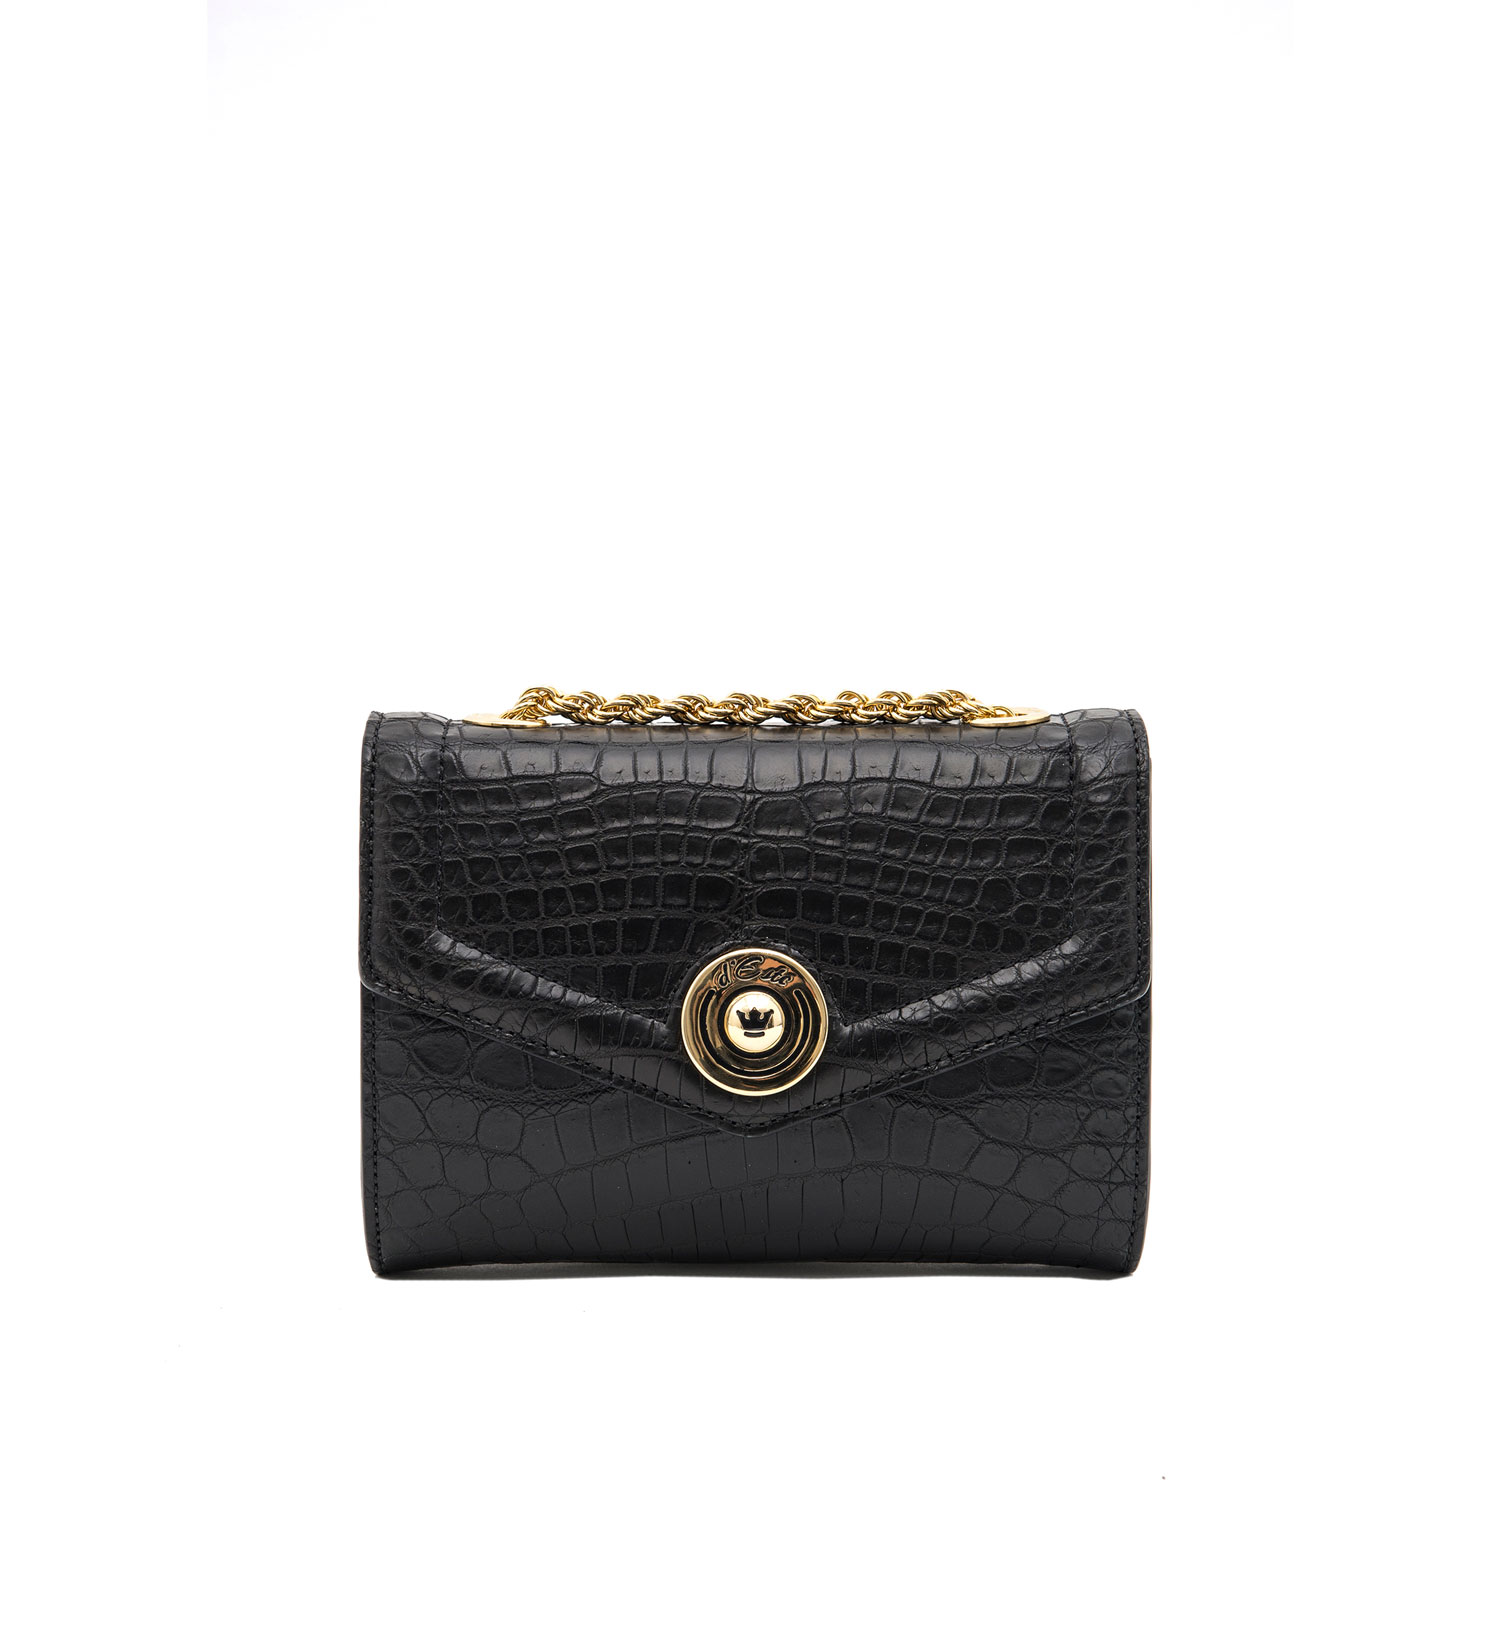 Coco-Antibes Black Clutch Bag